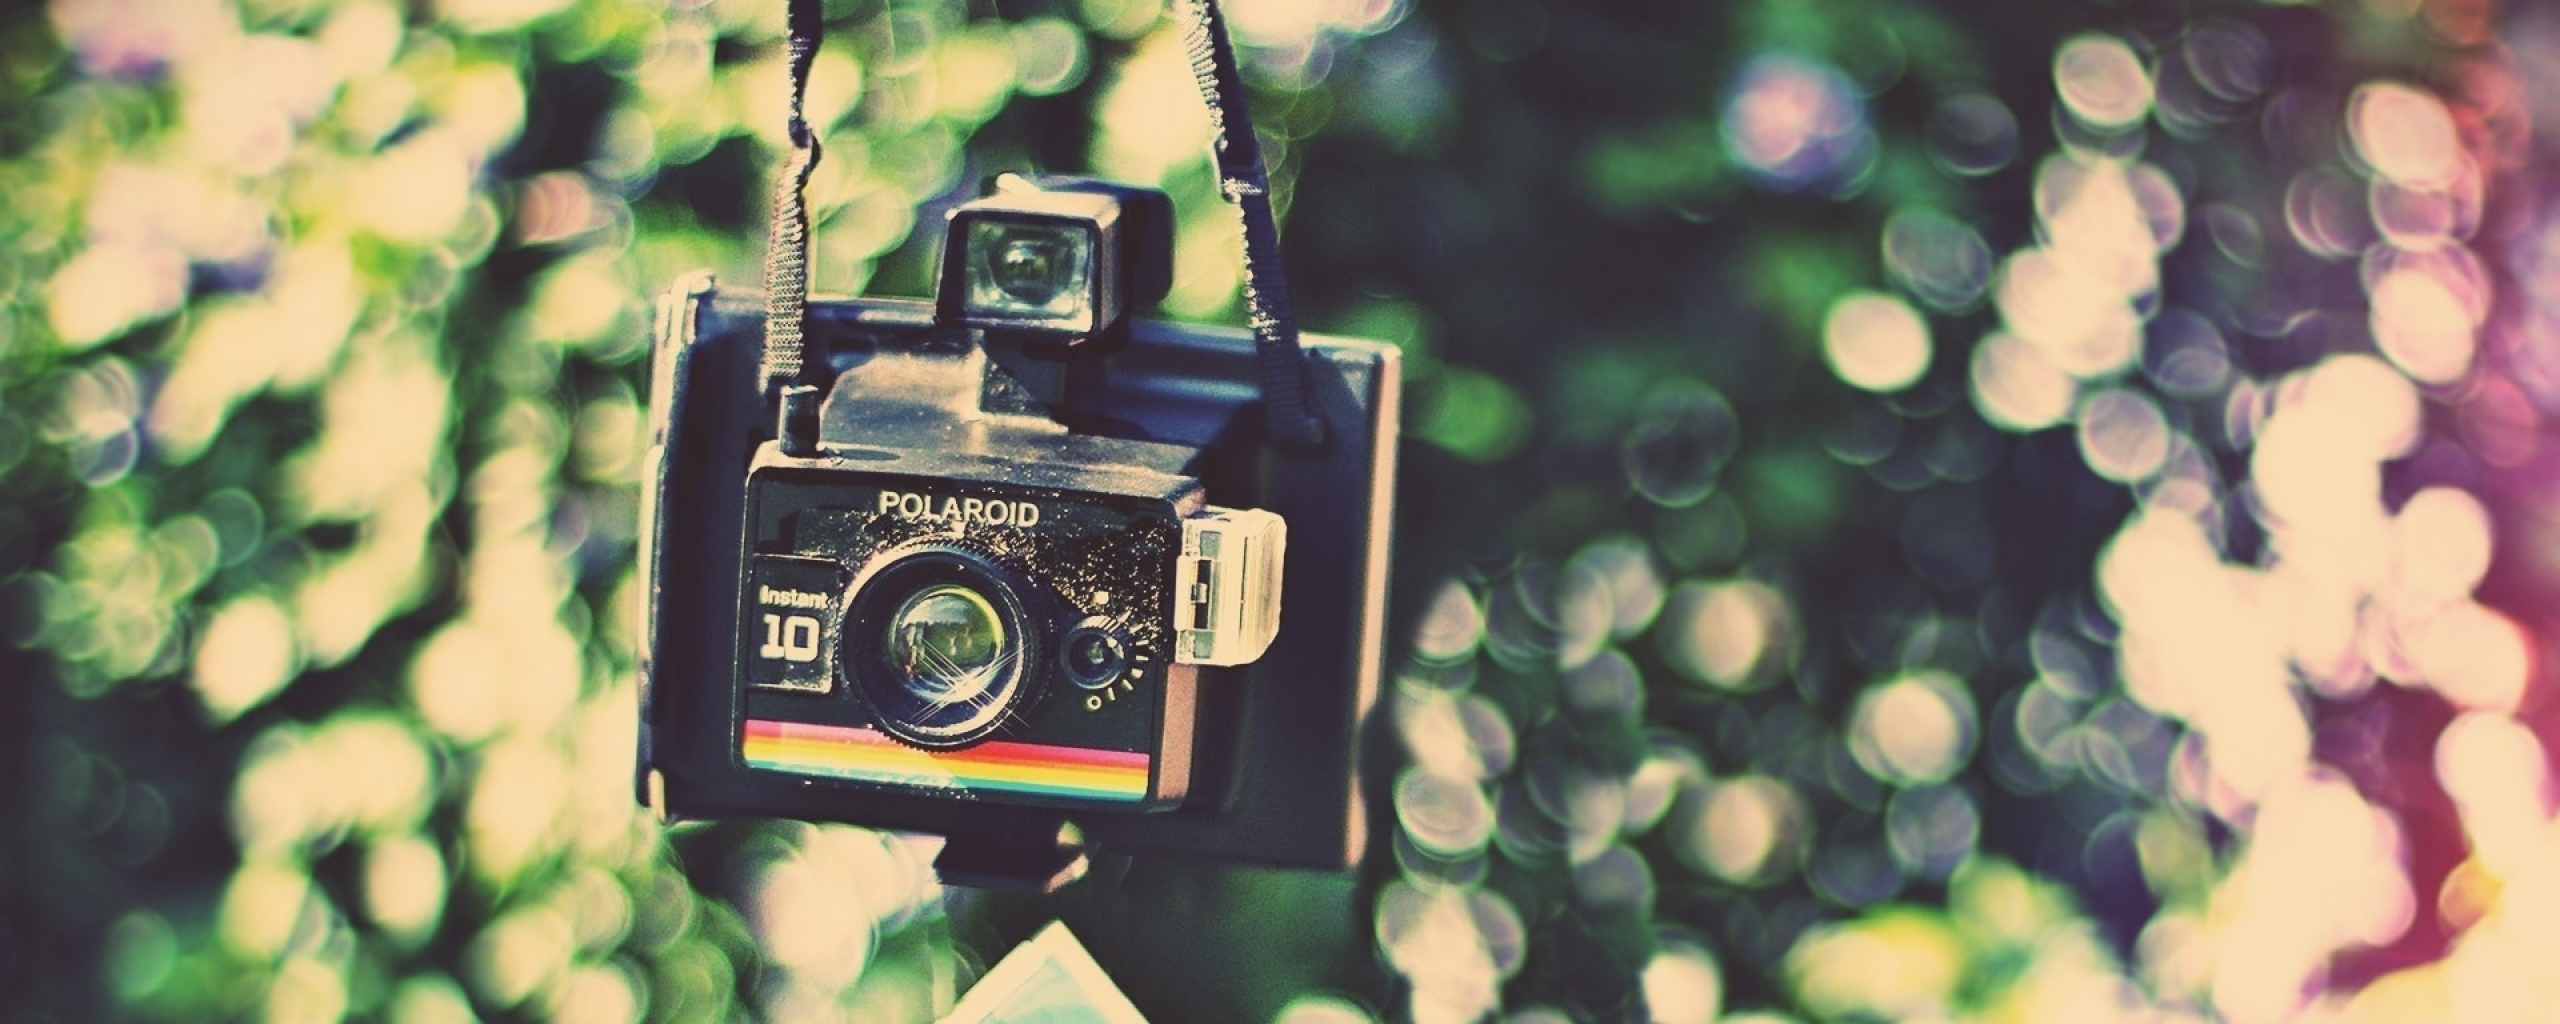 Download Polaroid Camera Wallpaper Gallery